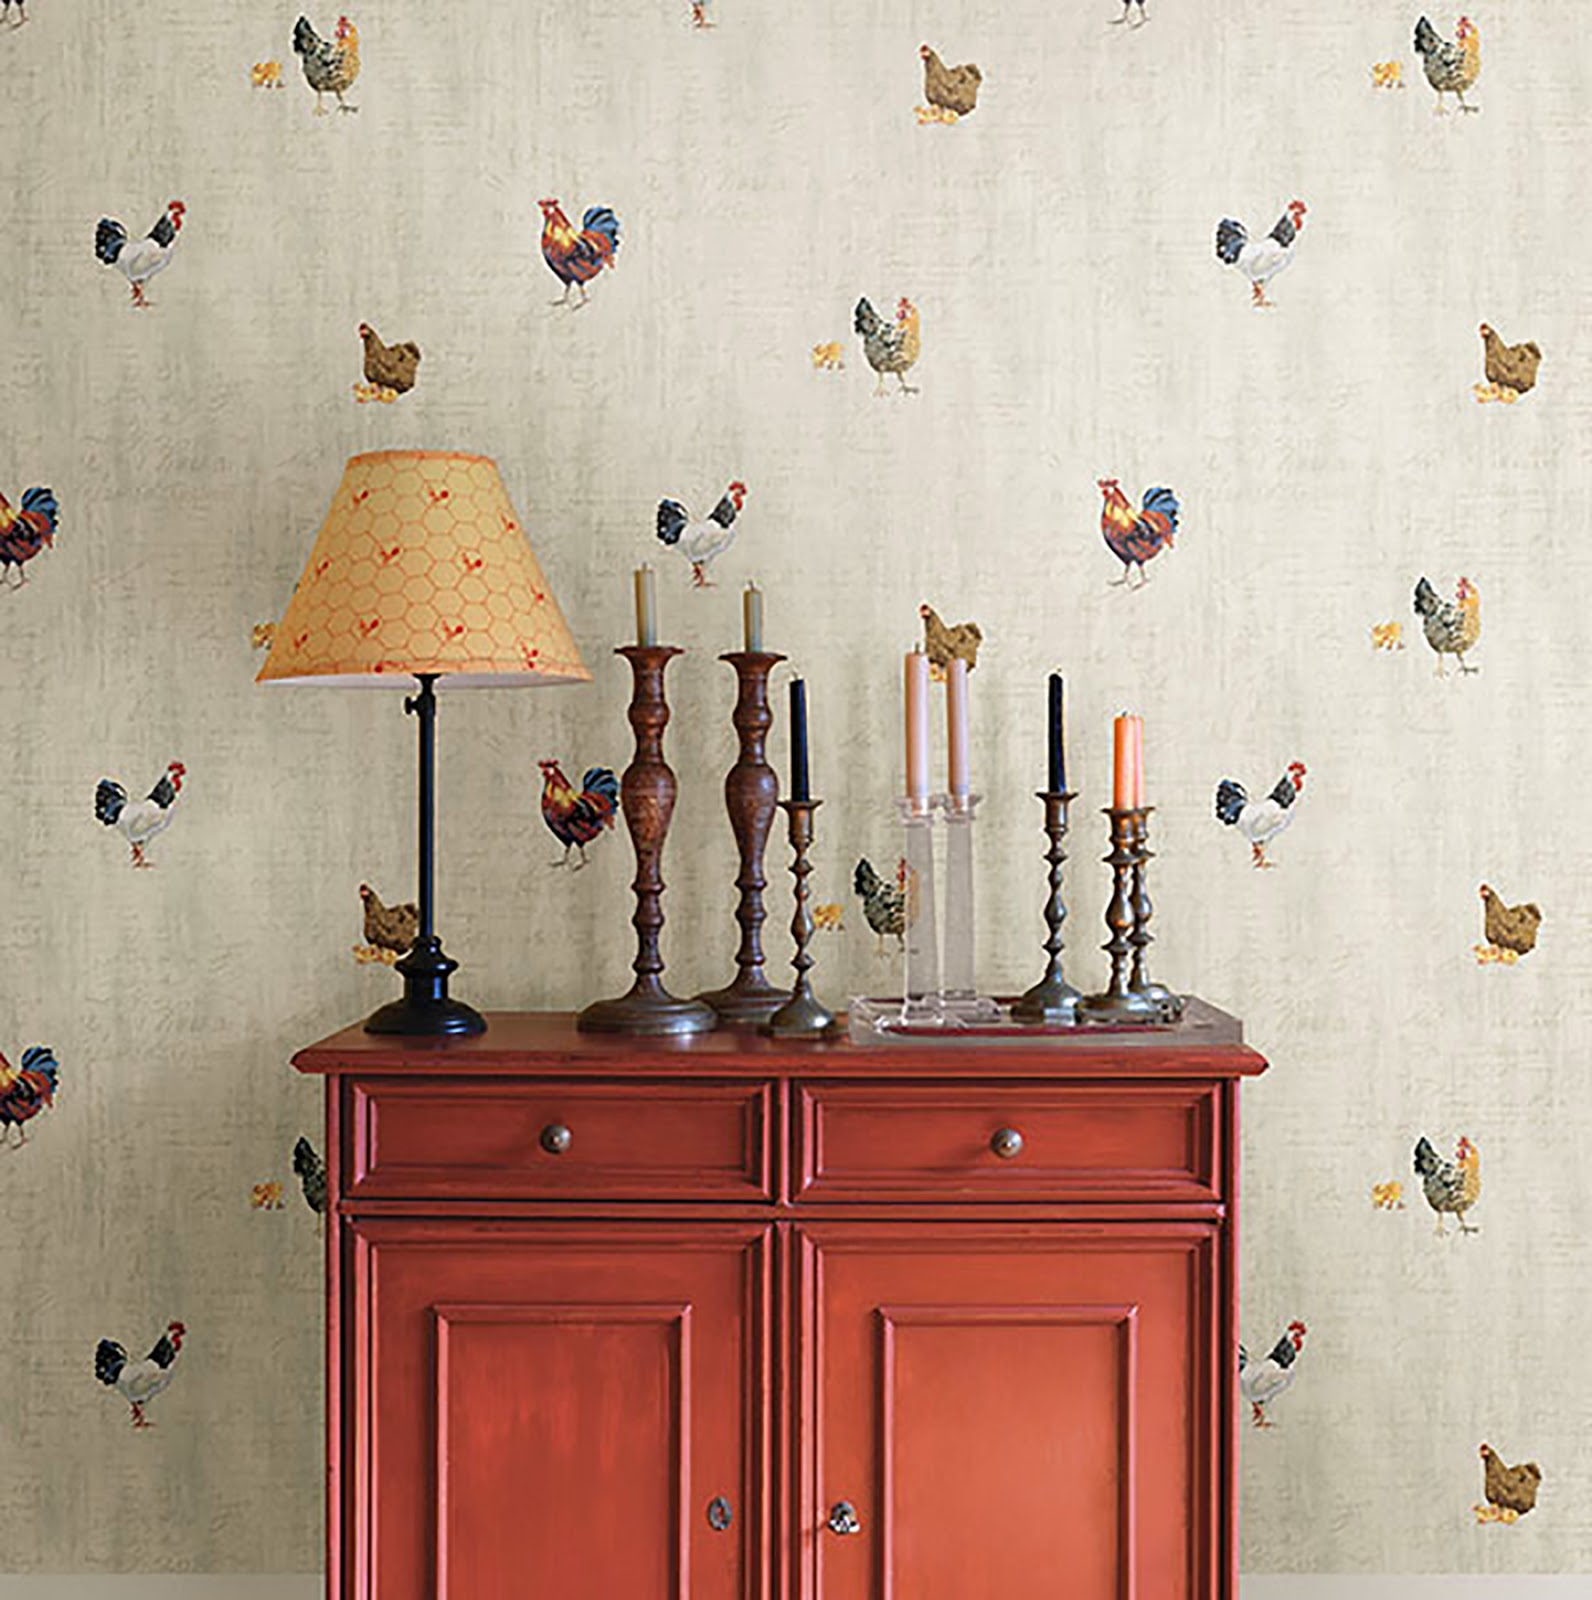 https://www.wallcoveringsforless.com/shoppingcart/prodlist1.CFM?page=_prod_detail.cfm&product_id=44544&startrow=25&search=countryside&pagereturn=_search.cfm